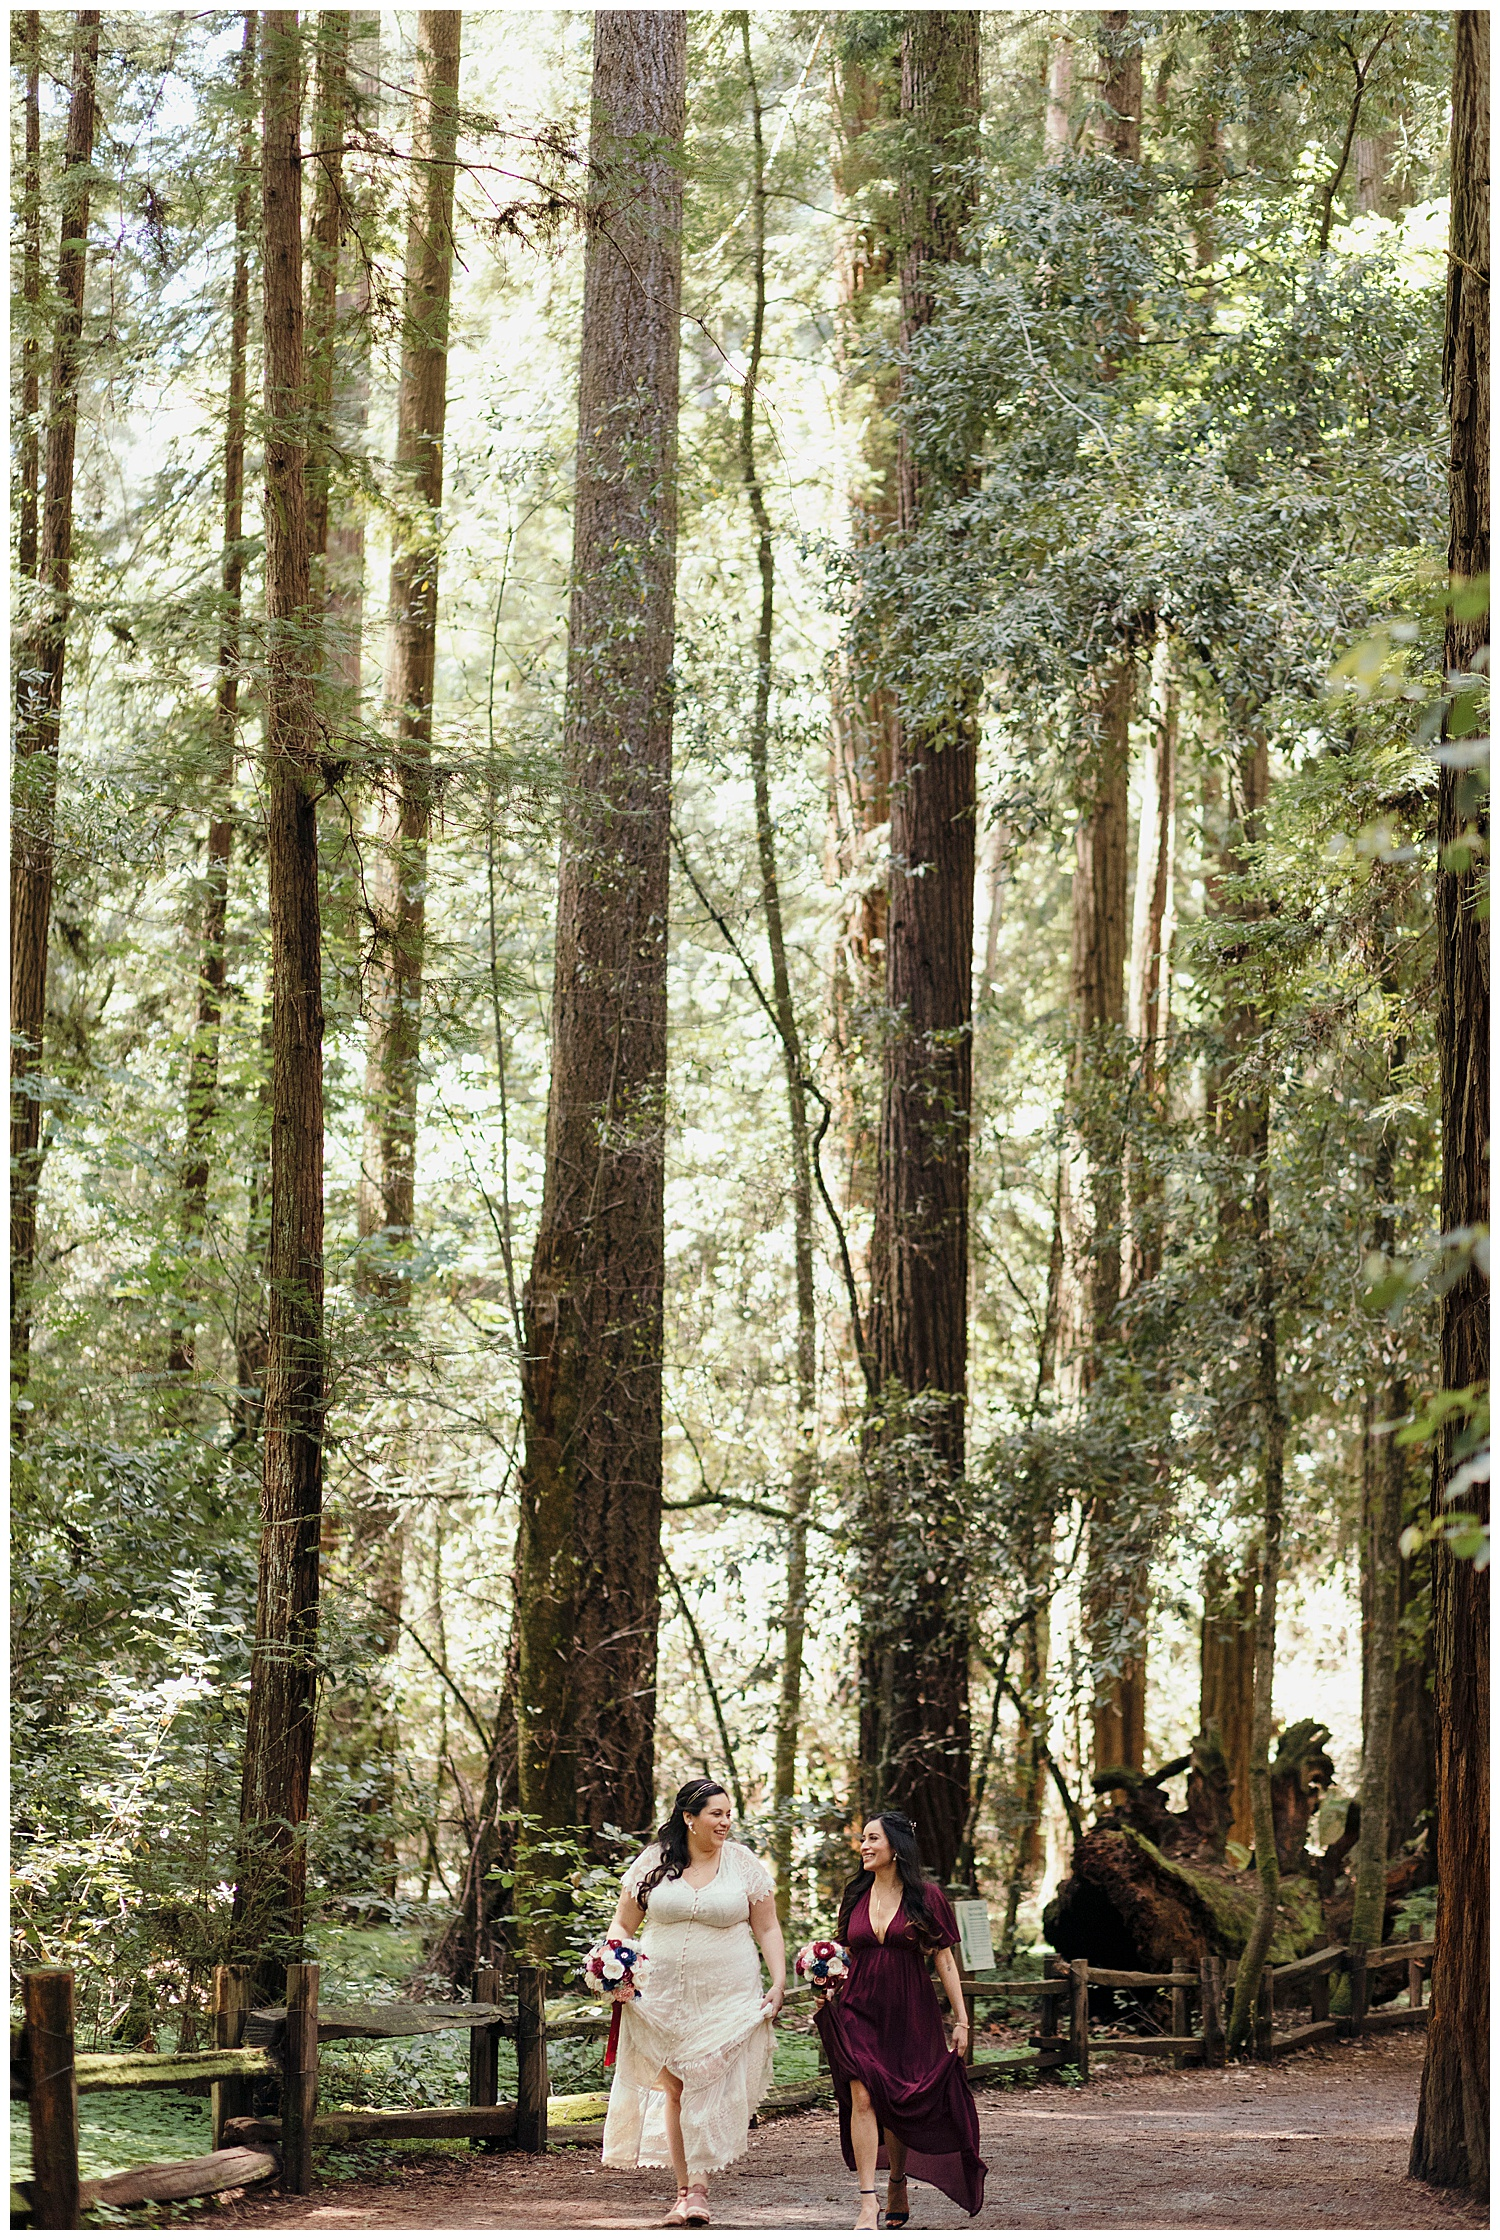 Bride walks with sister through the Henry Cowell redwoods in Felton to wedding